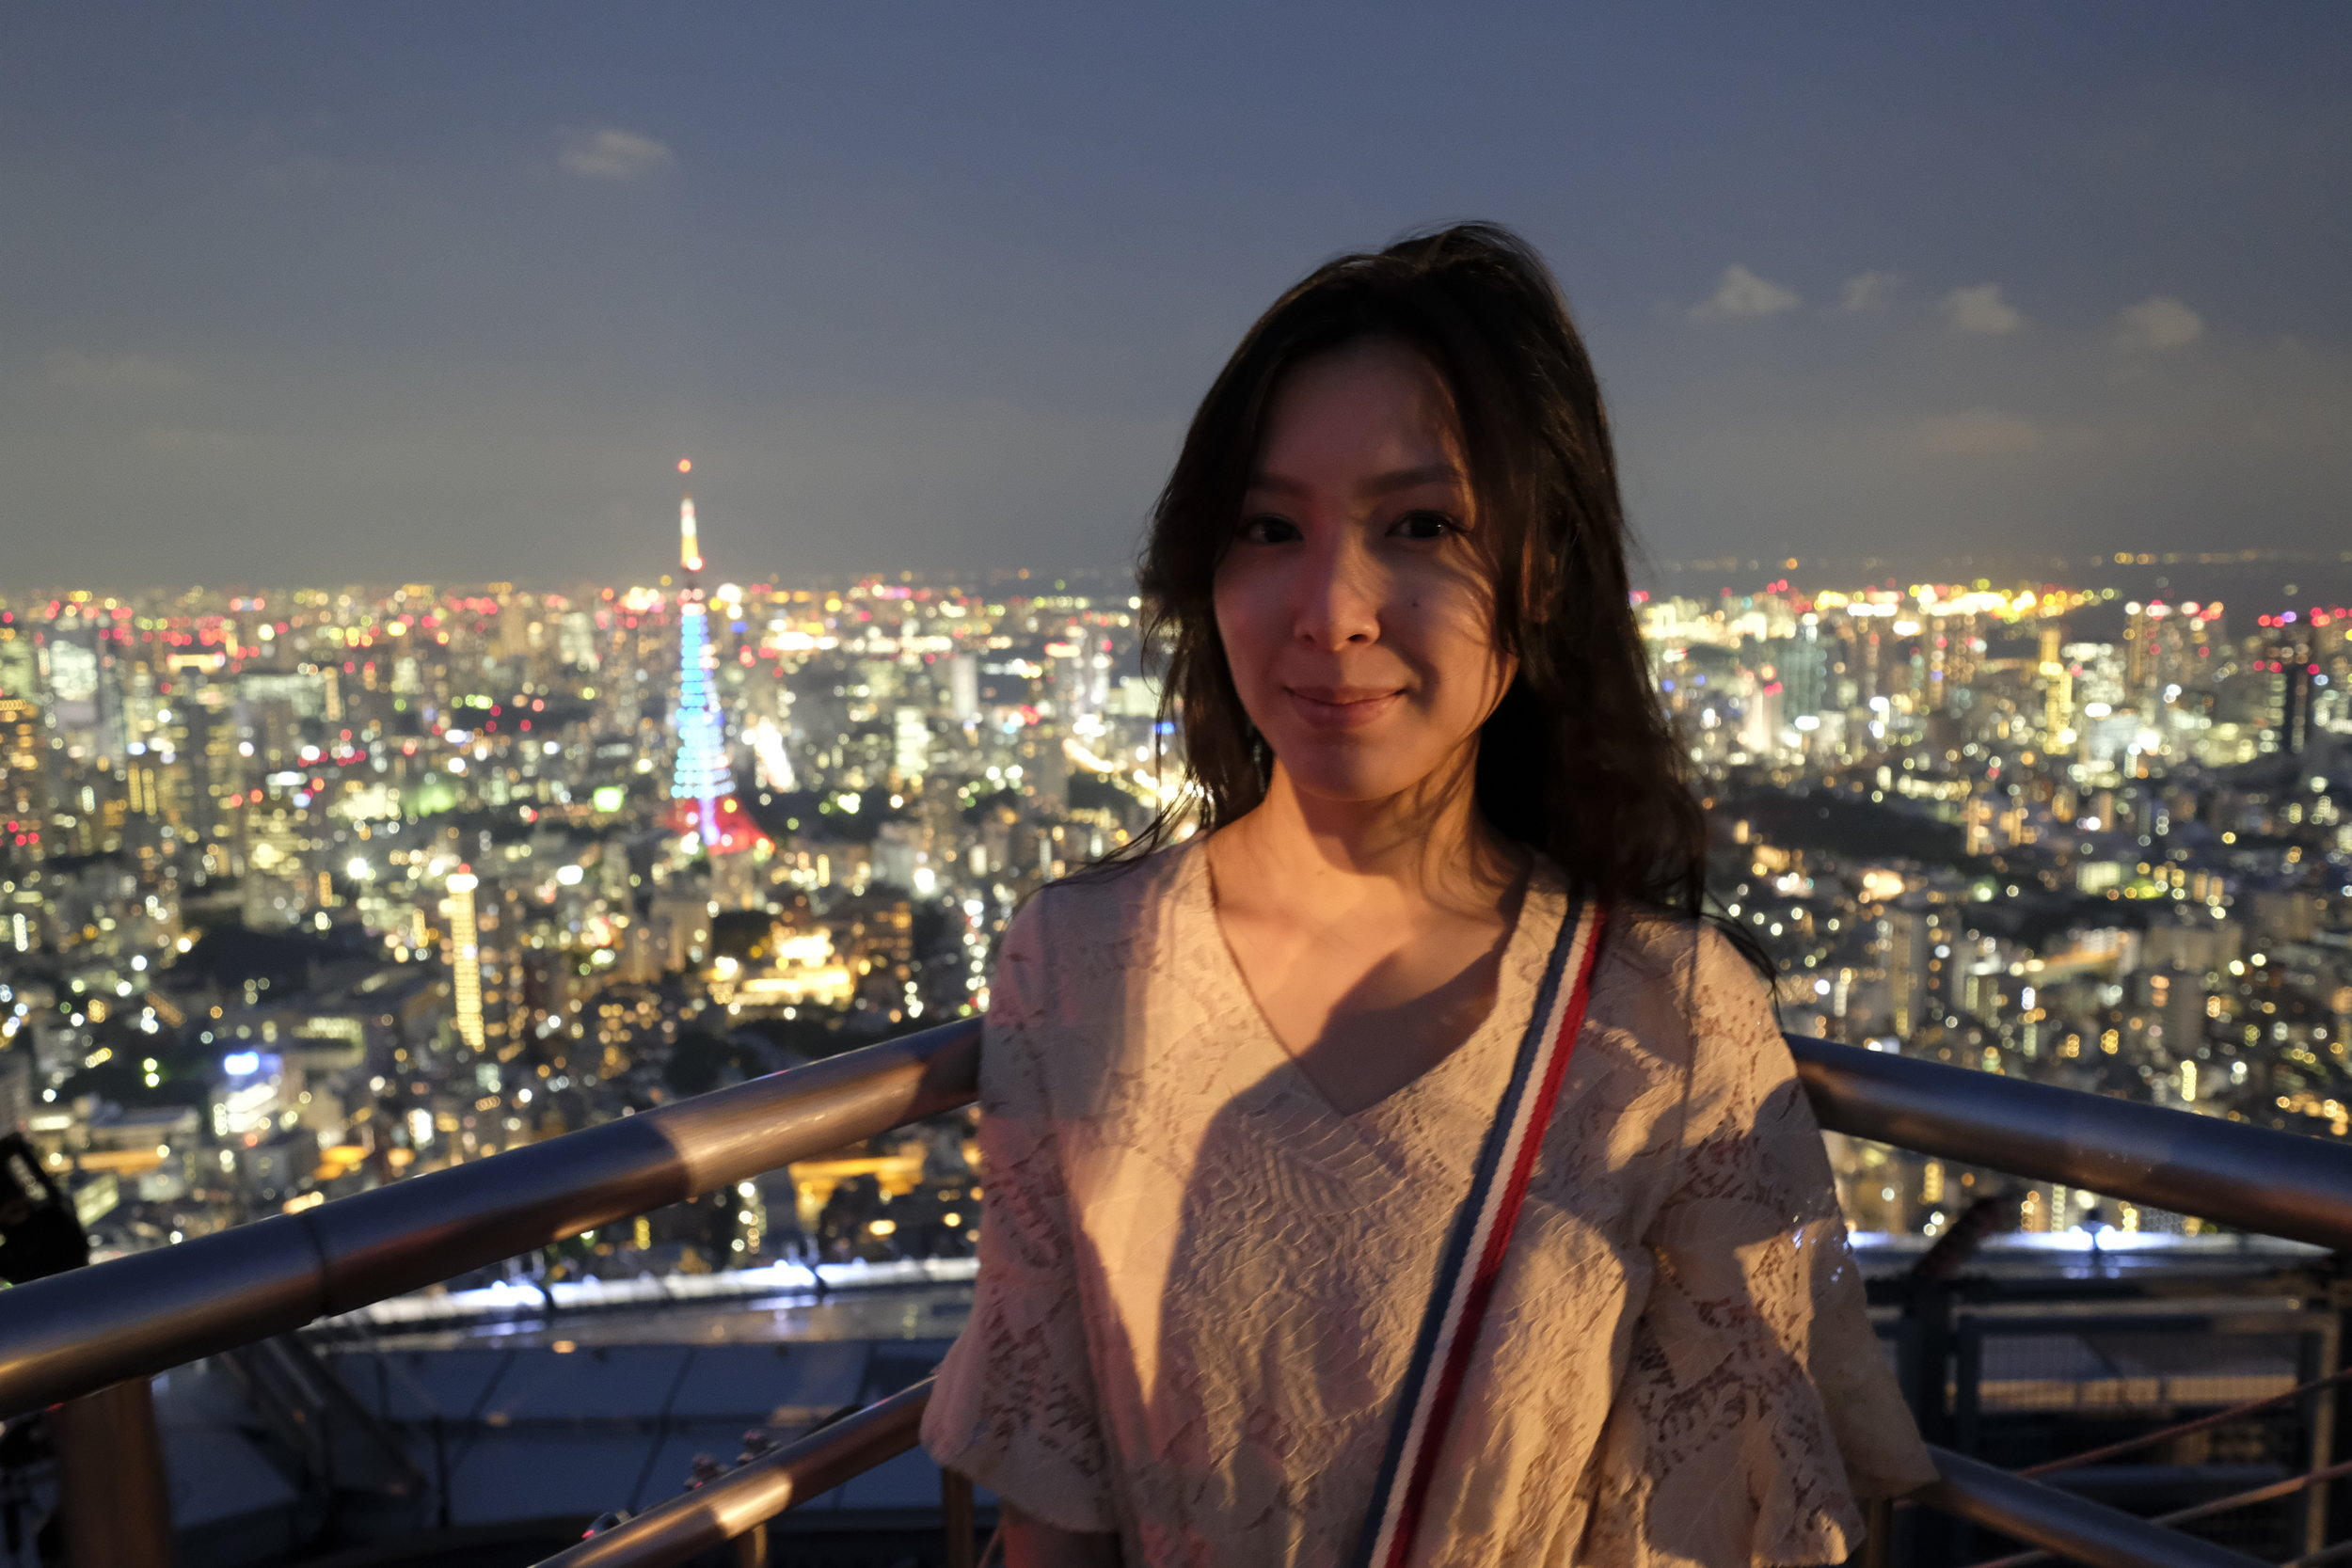 Bunny de coco viewing the Tokyo Tower that night